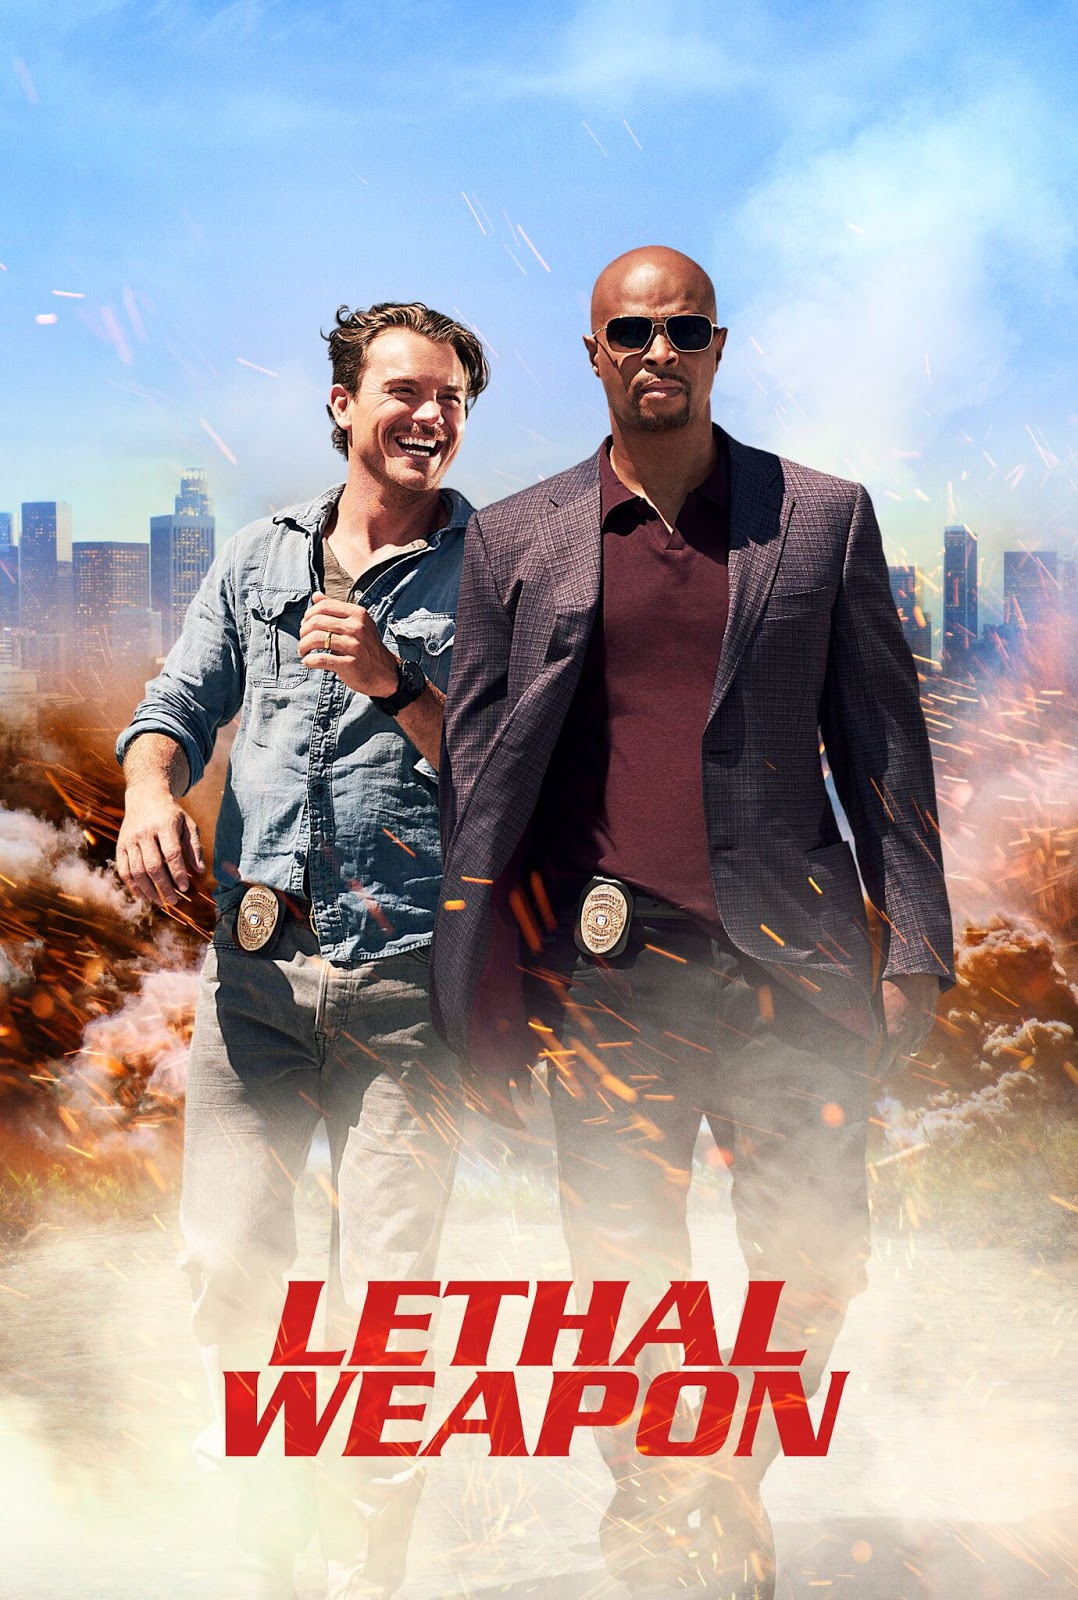 Lethal Weapon [NEW][1x06] WEB-DL 720p LAT-EN